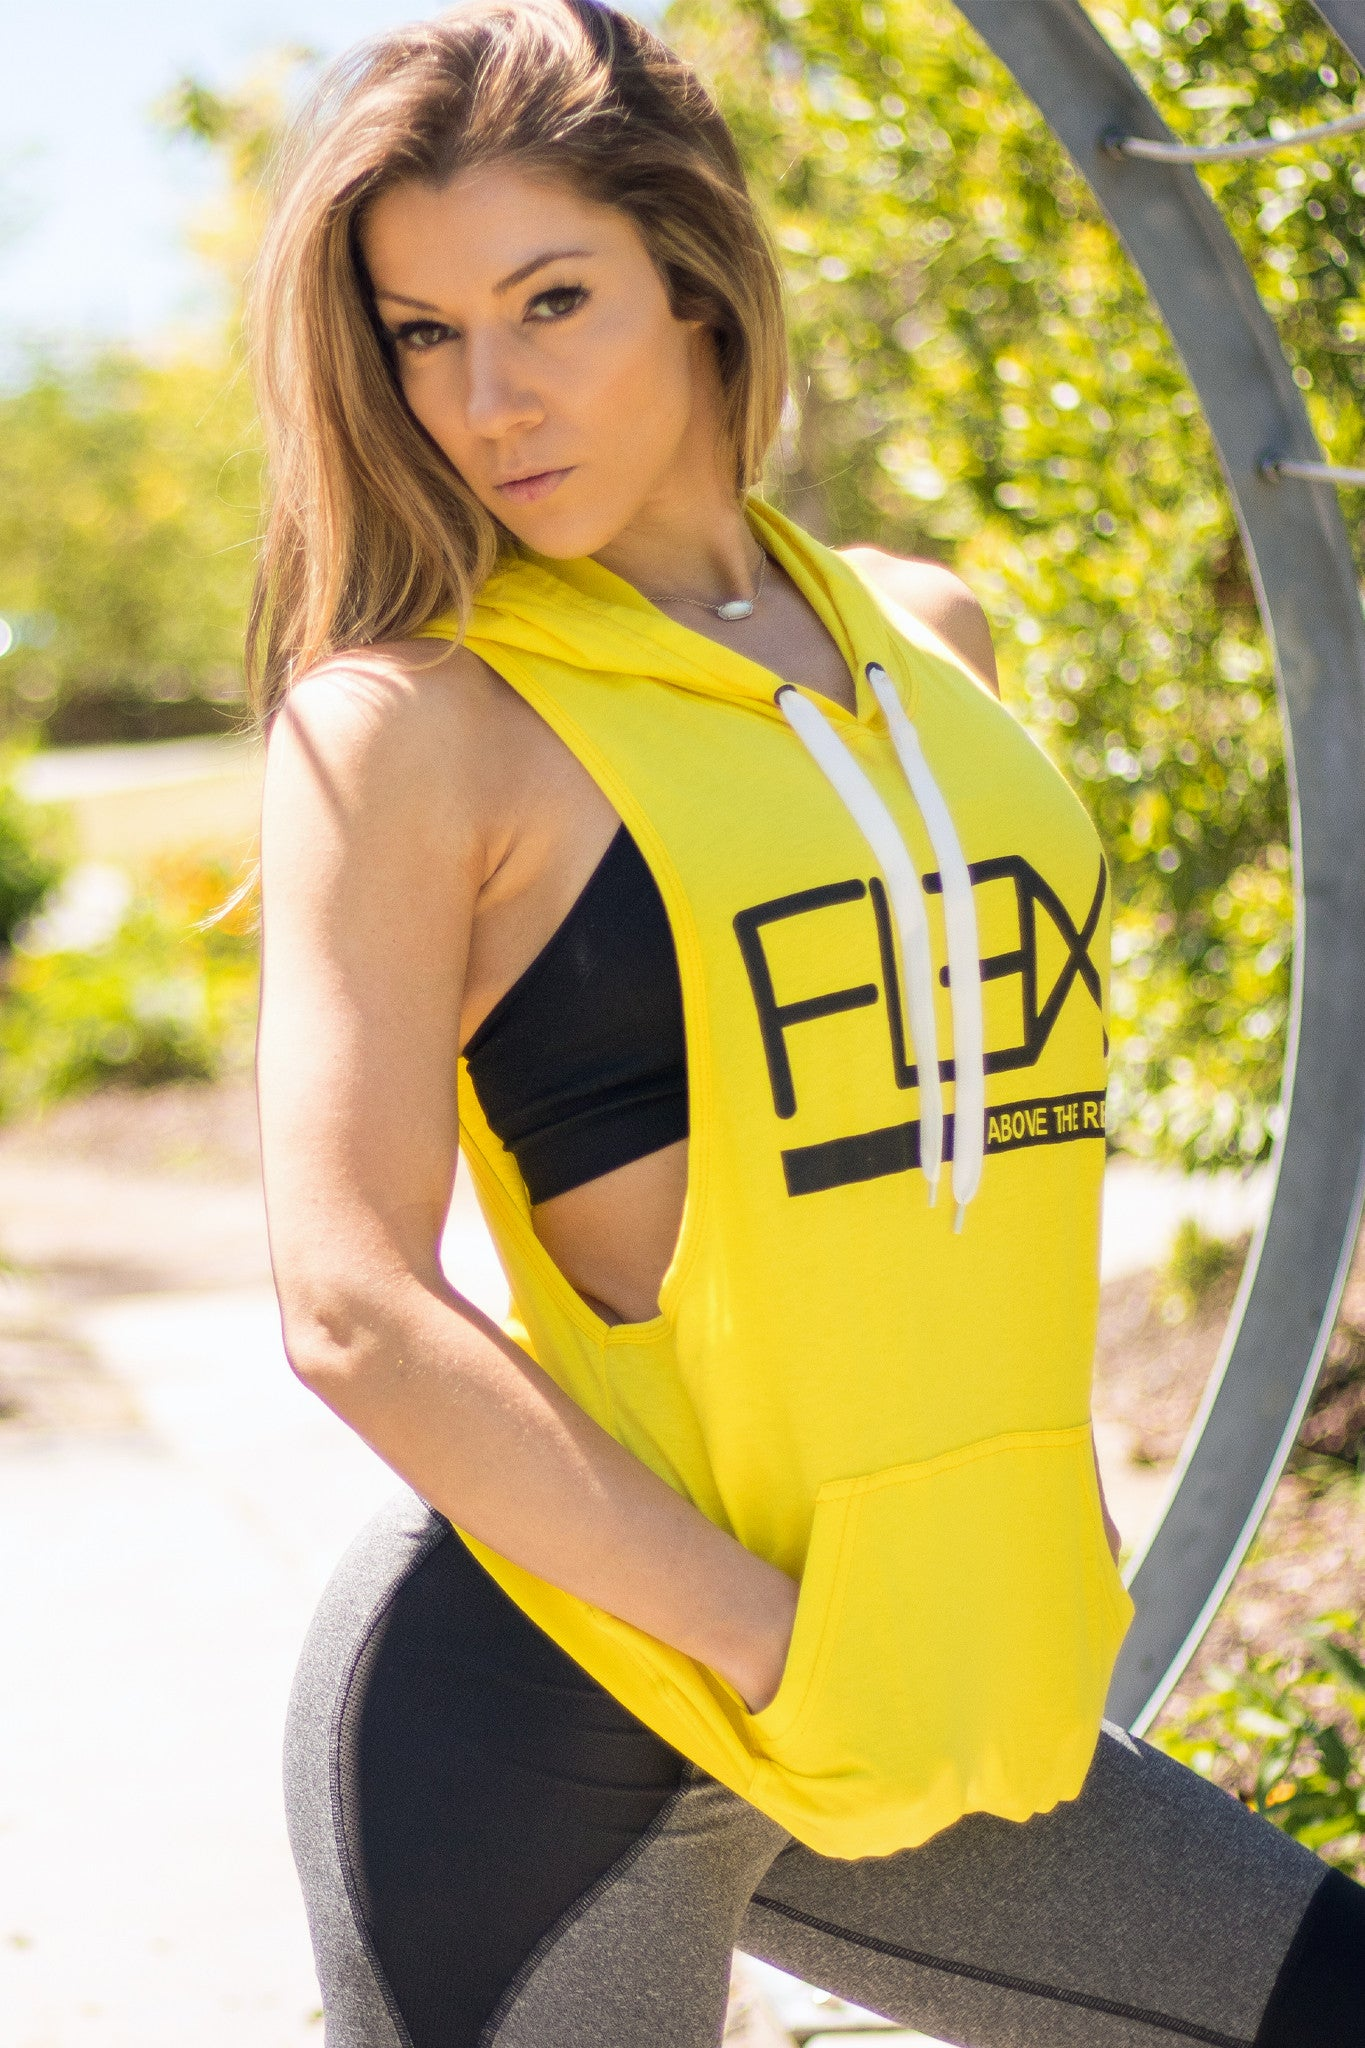 Women's FitFlex Sleeveless Hoodie - Neon Yellow - Scal Clothing